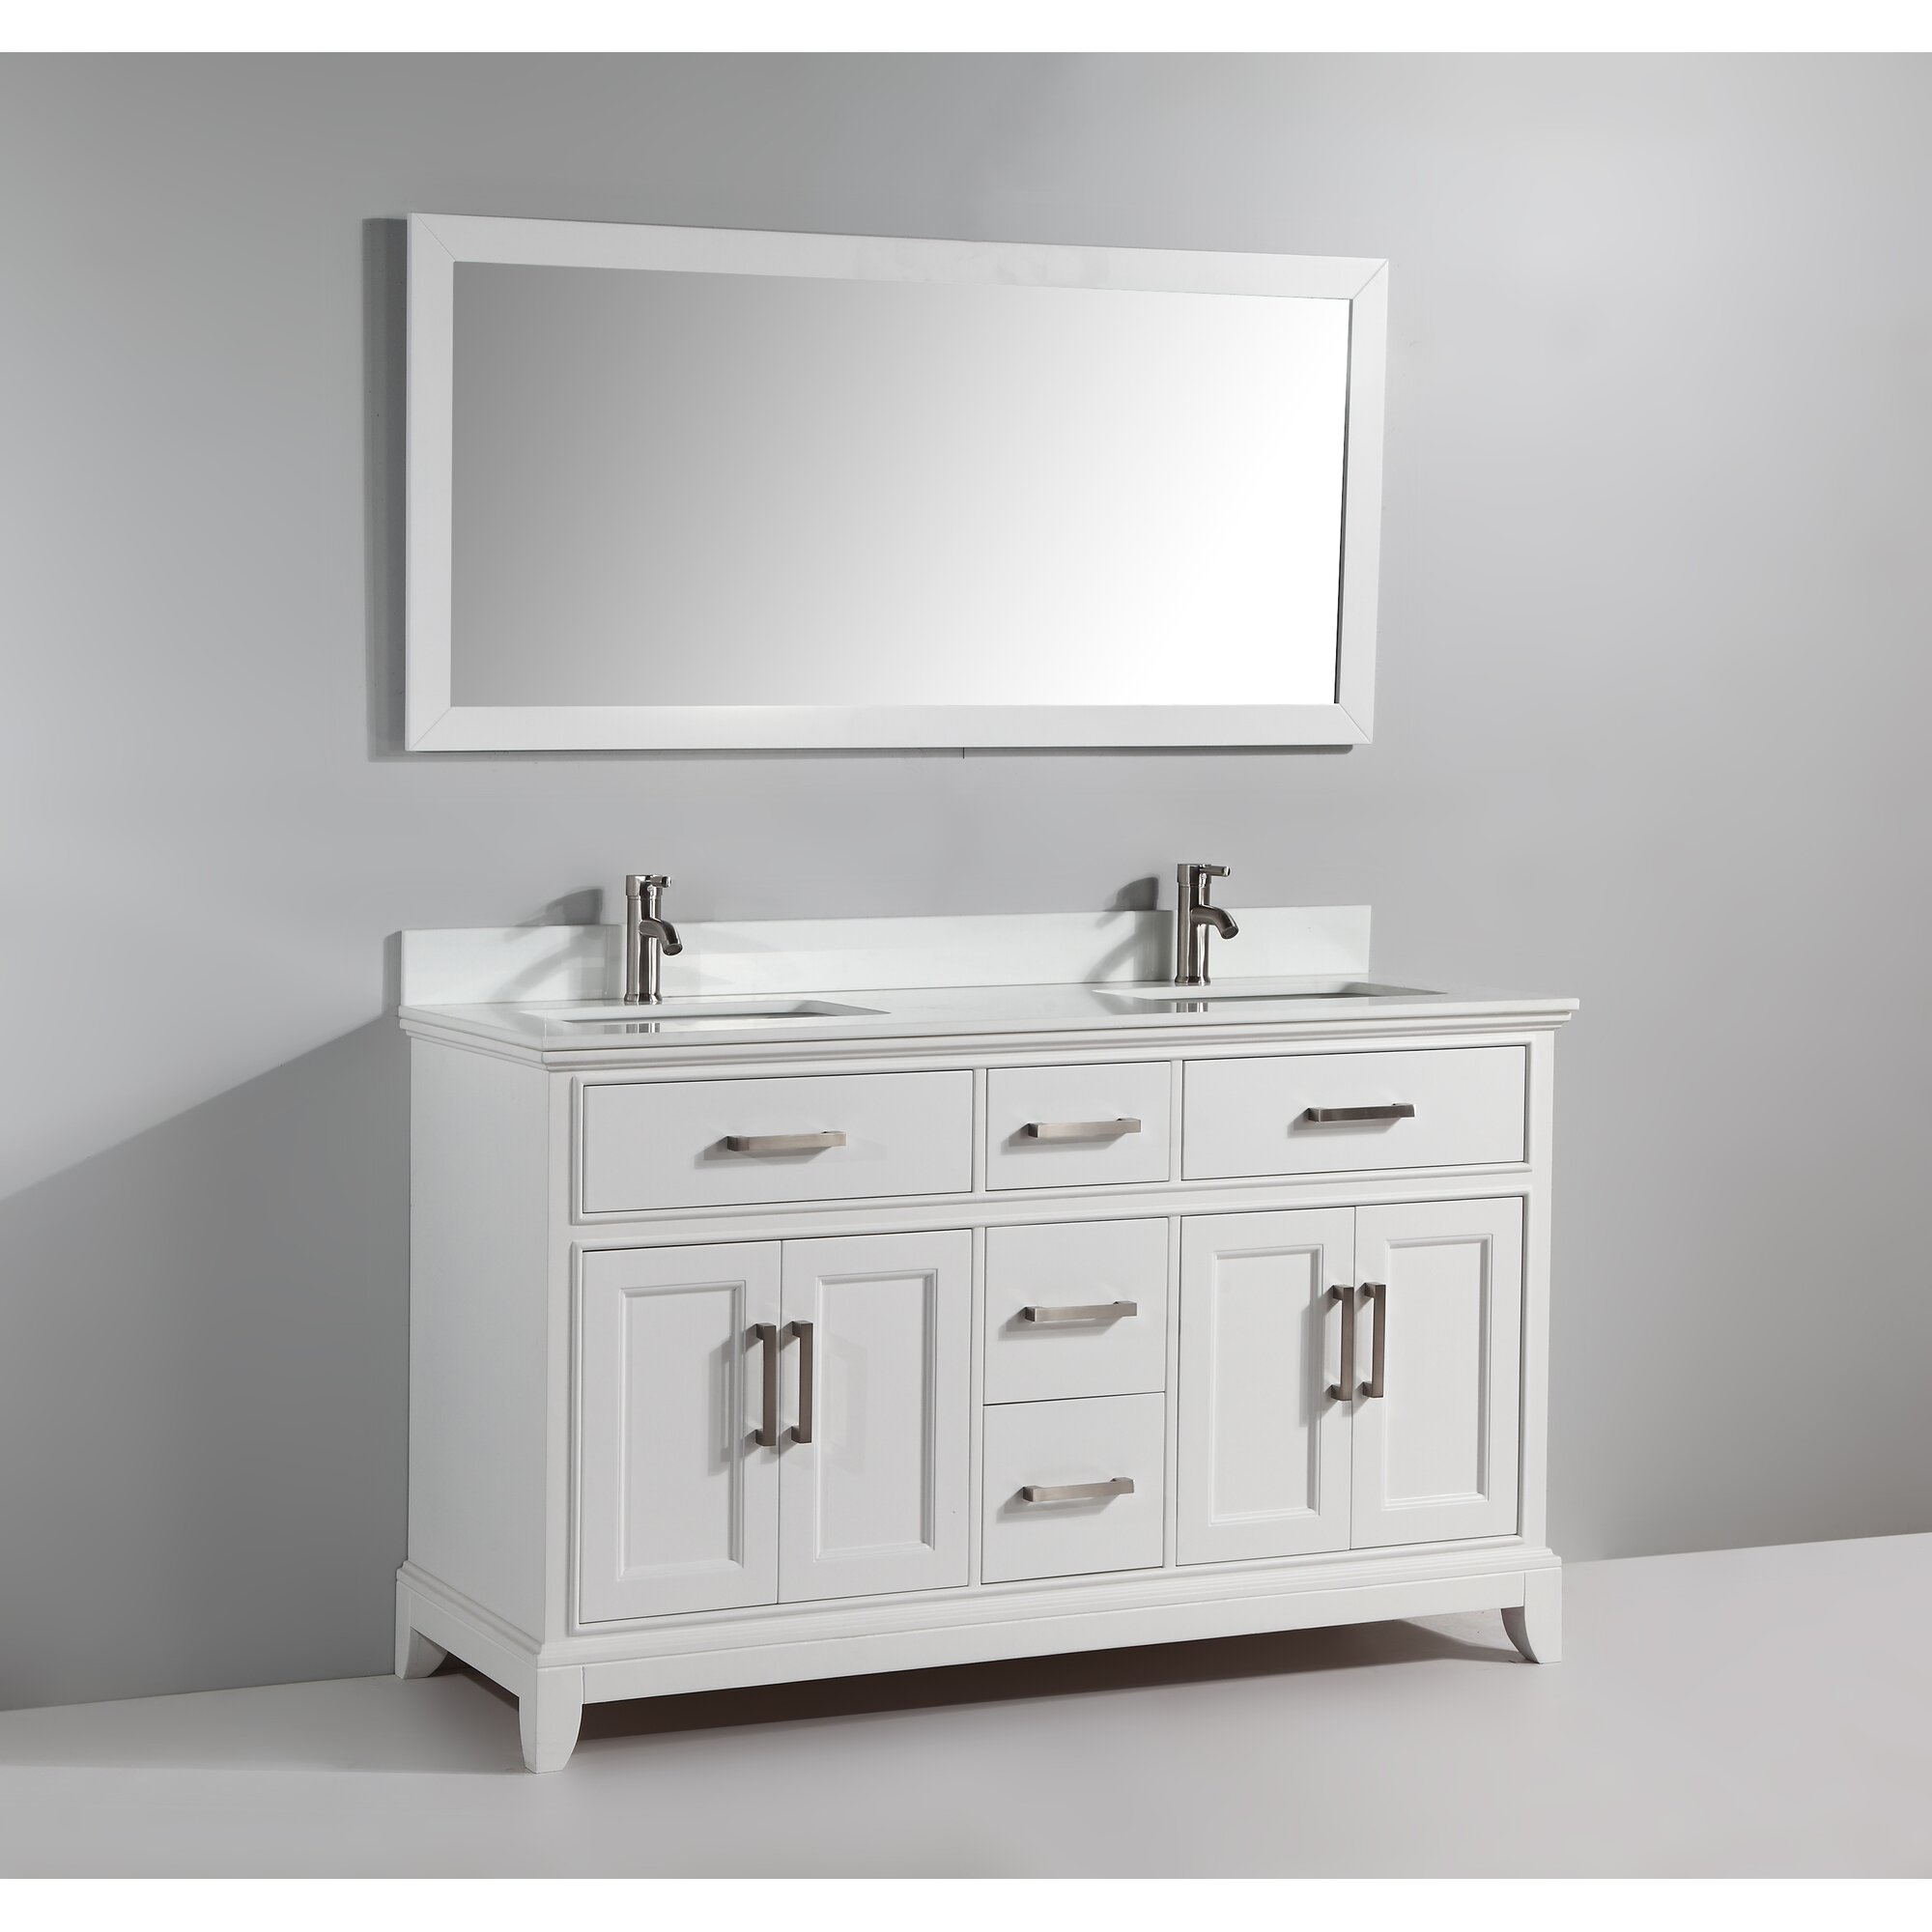 awesome black wall white mount mirror and vessel bowl sink with definition design for inch countertop your vanity bathroom double